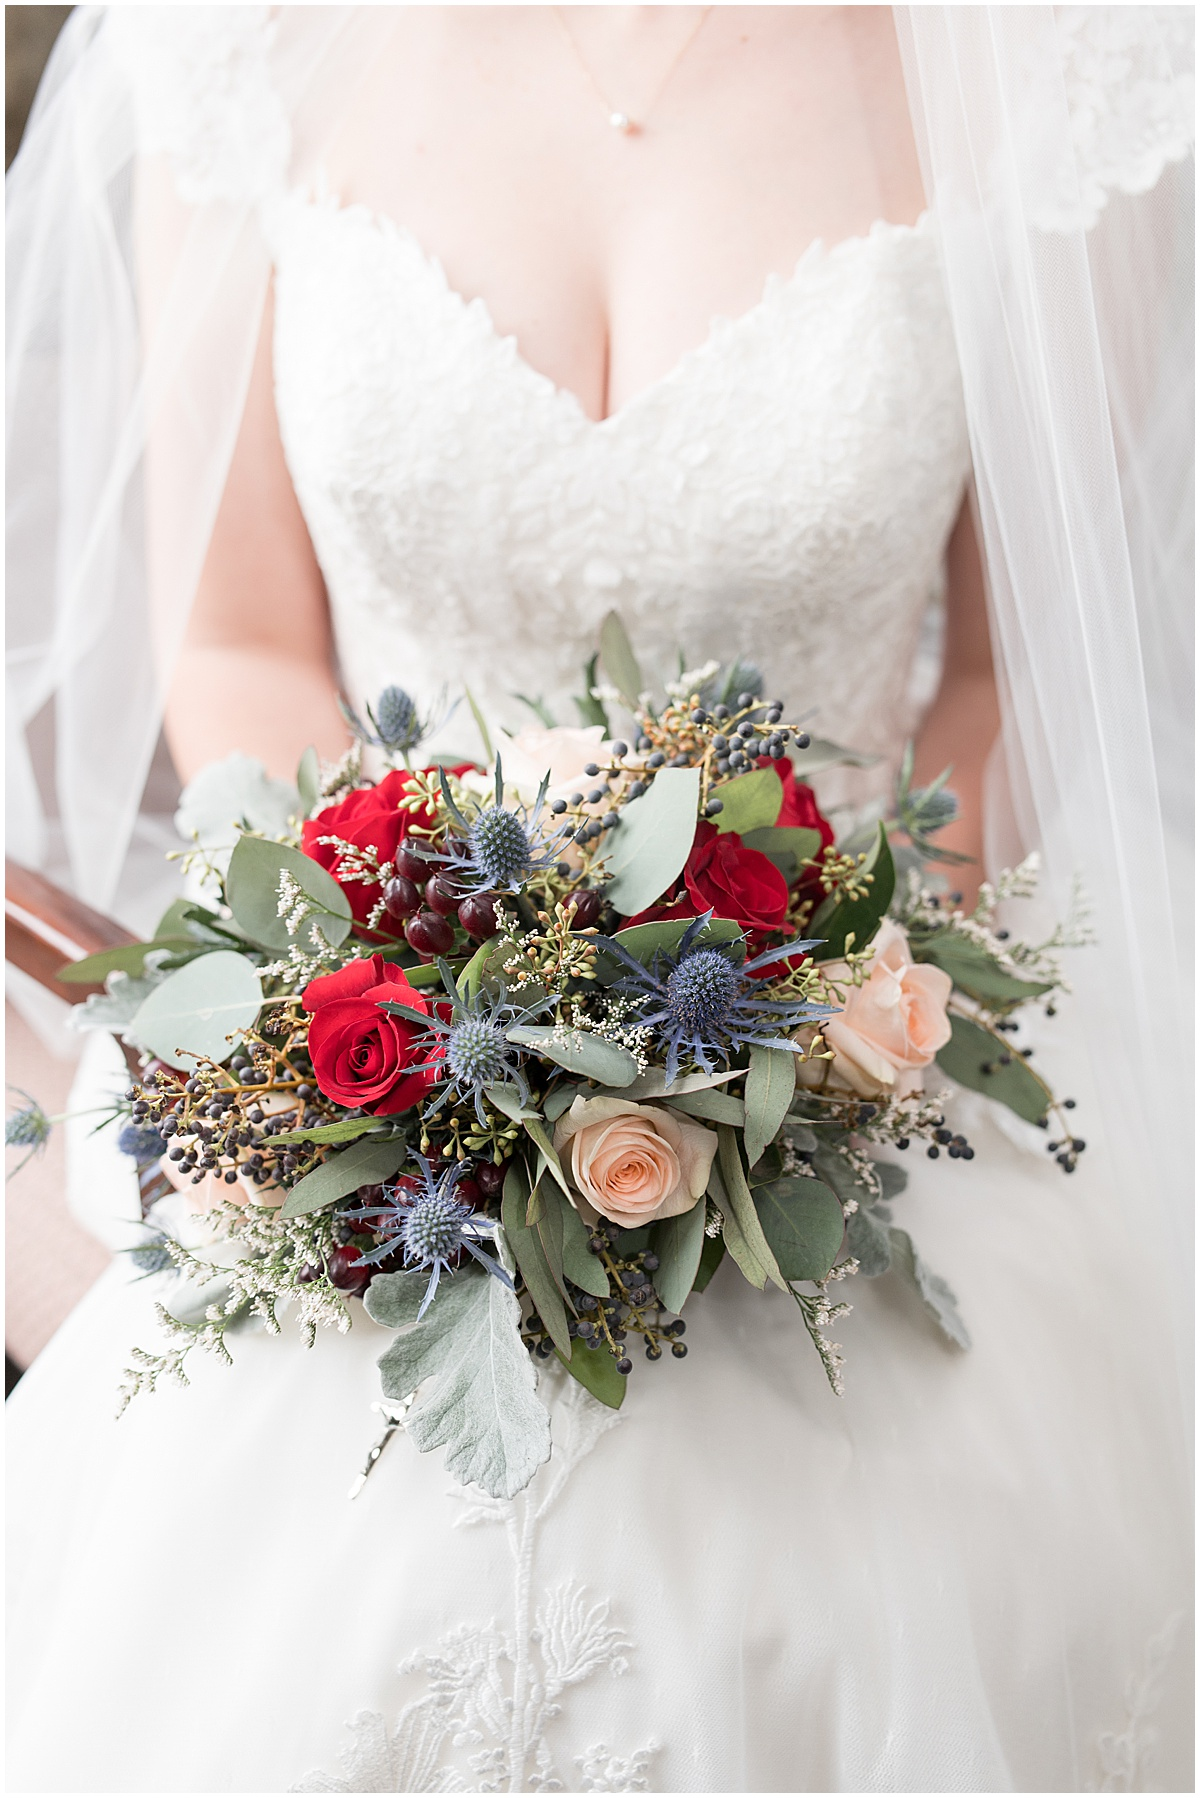 Detail of bouquet for winter wedding at the Cathedral of Saint Mary